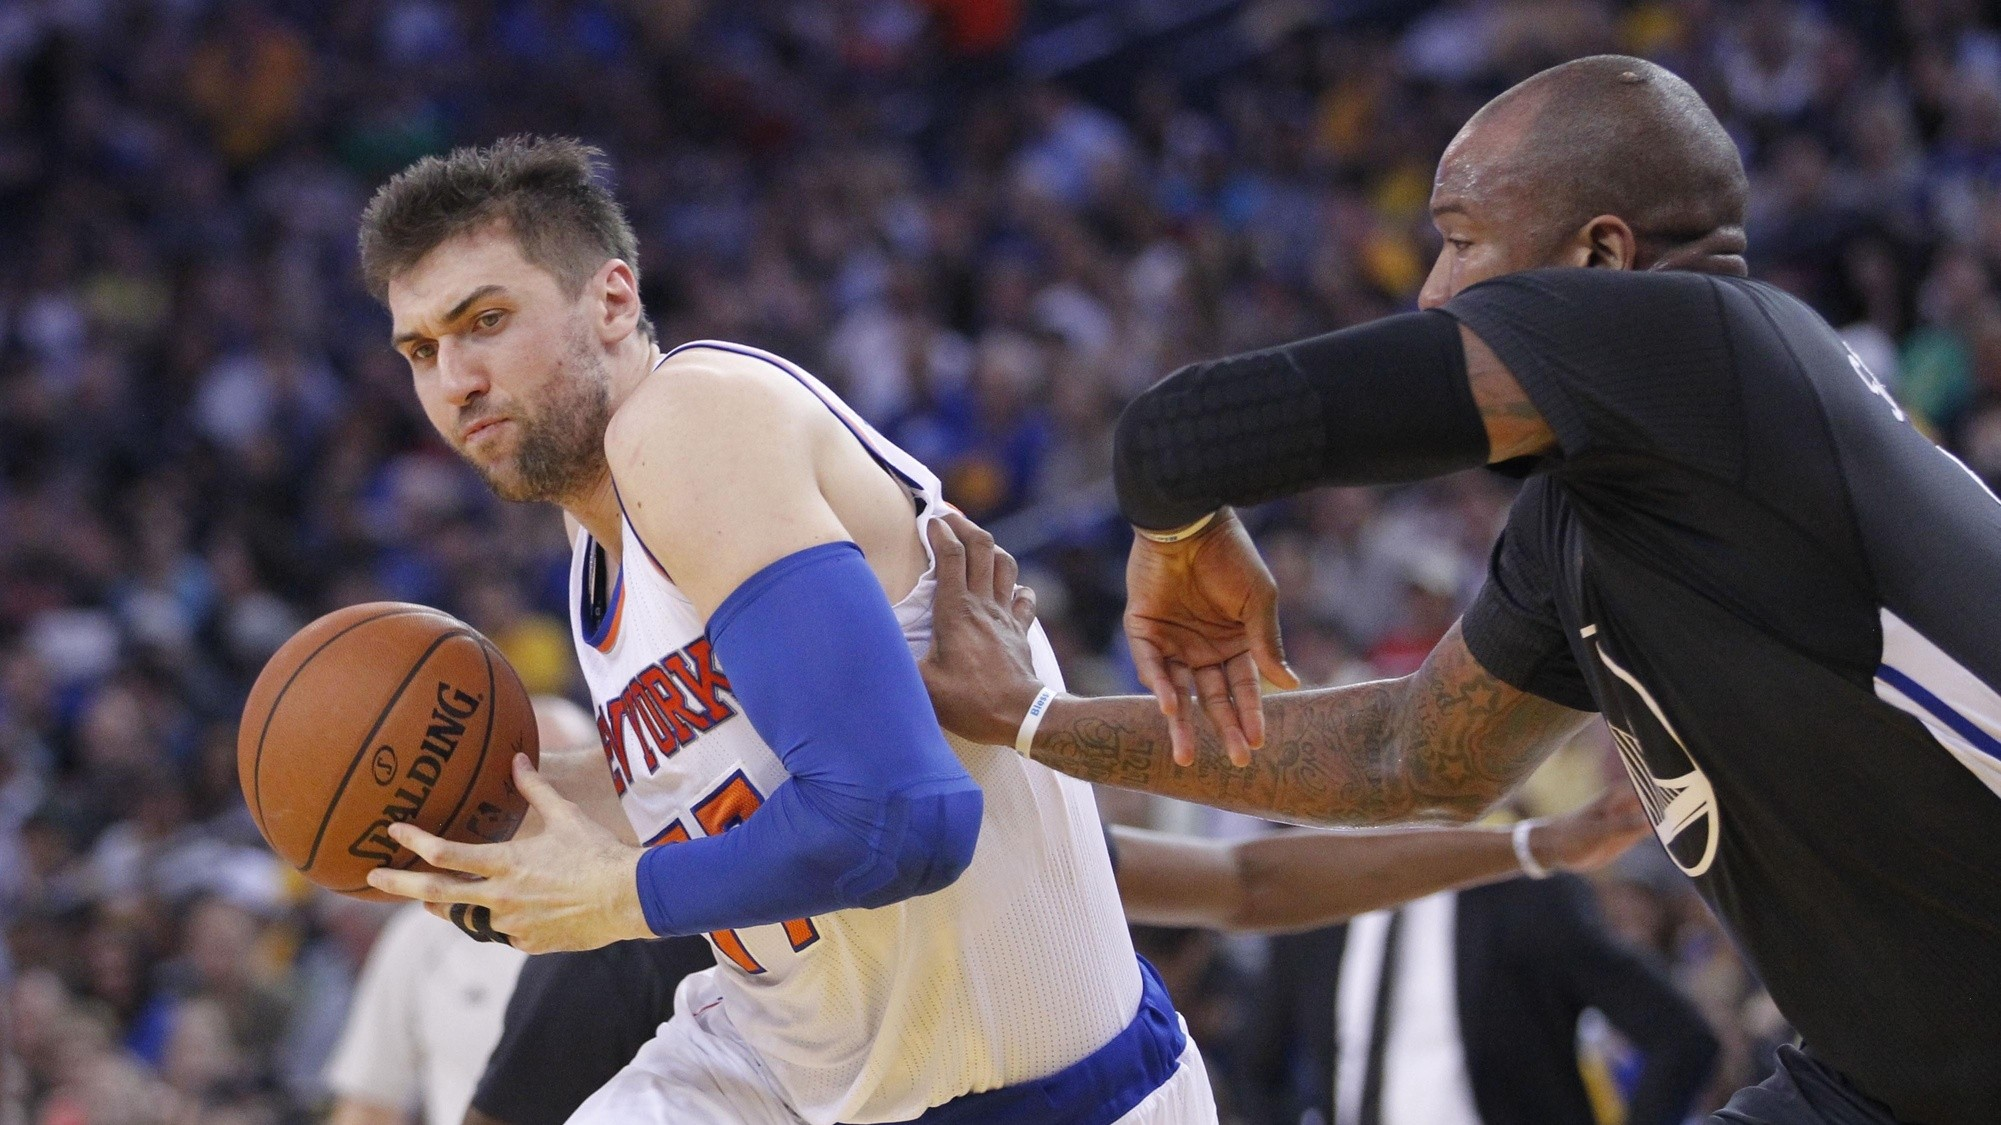 Everyone Hates Andrea Bargnani, And The Feeling Is Mutual